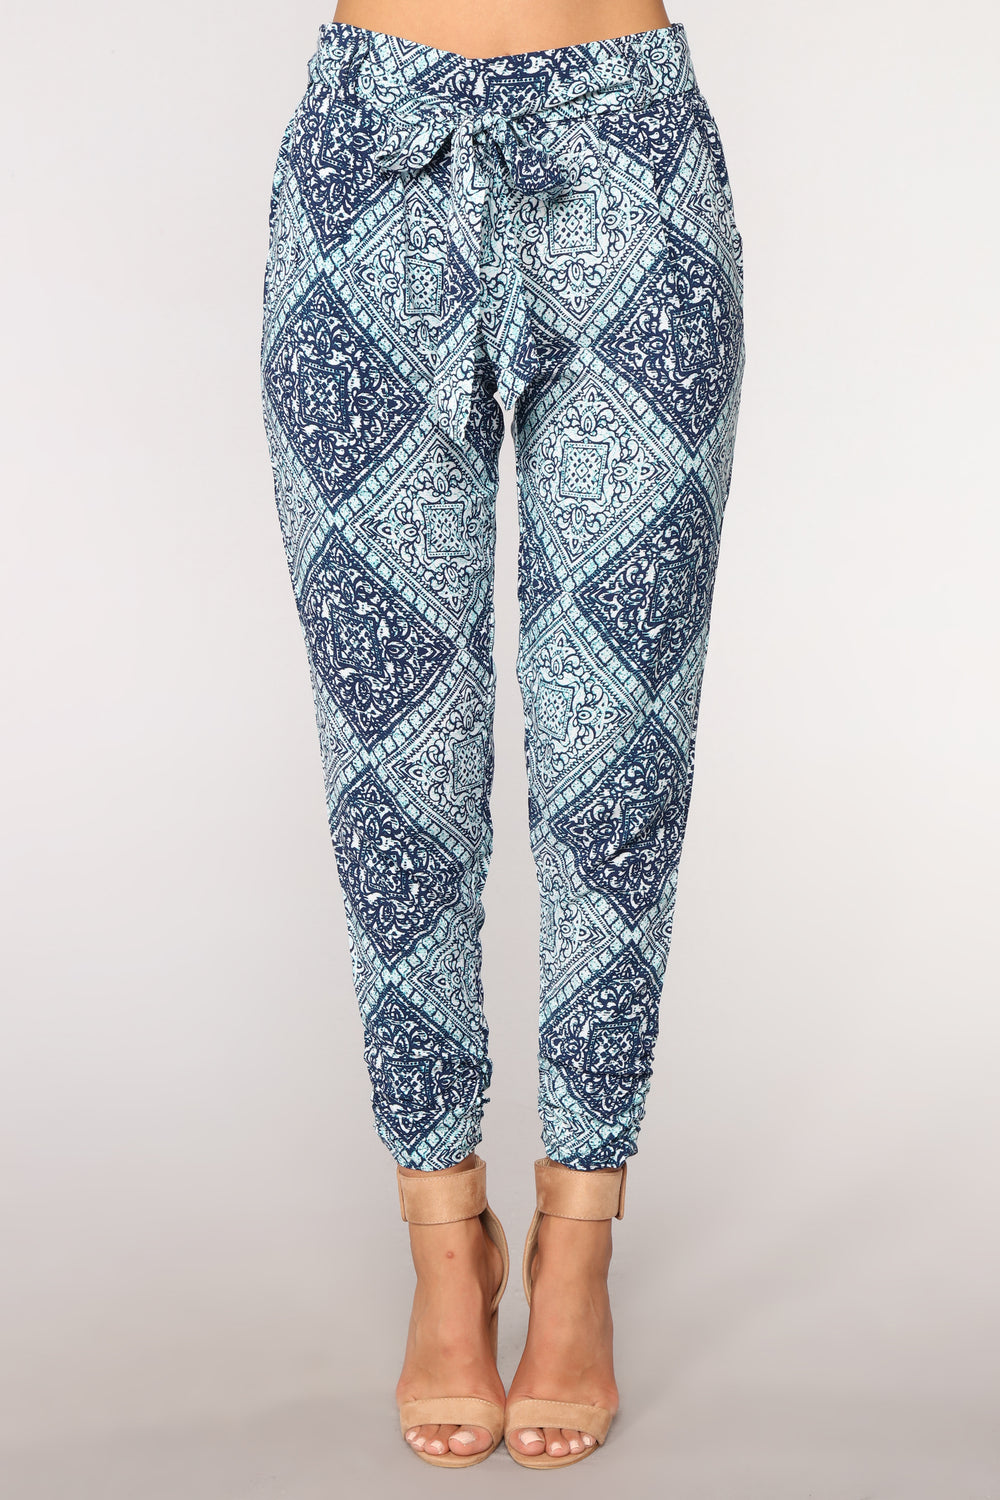 Follow The Moon Pants - Peru Blue